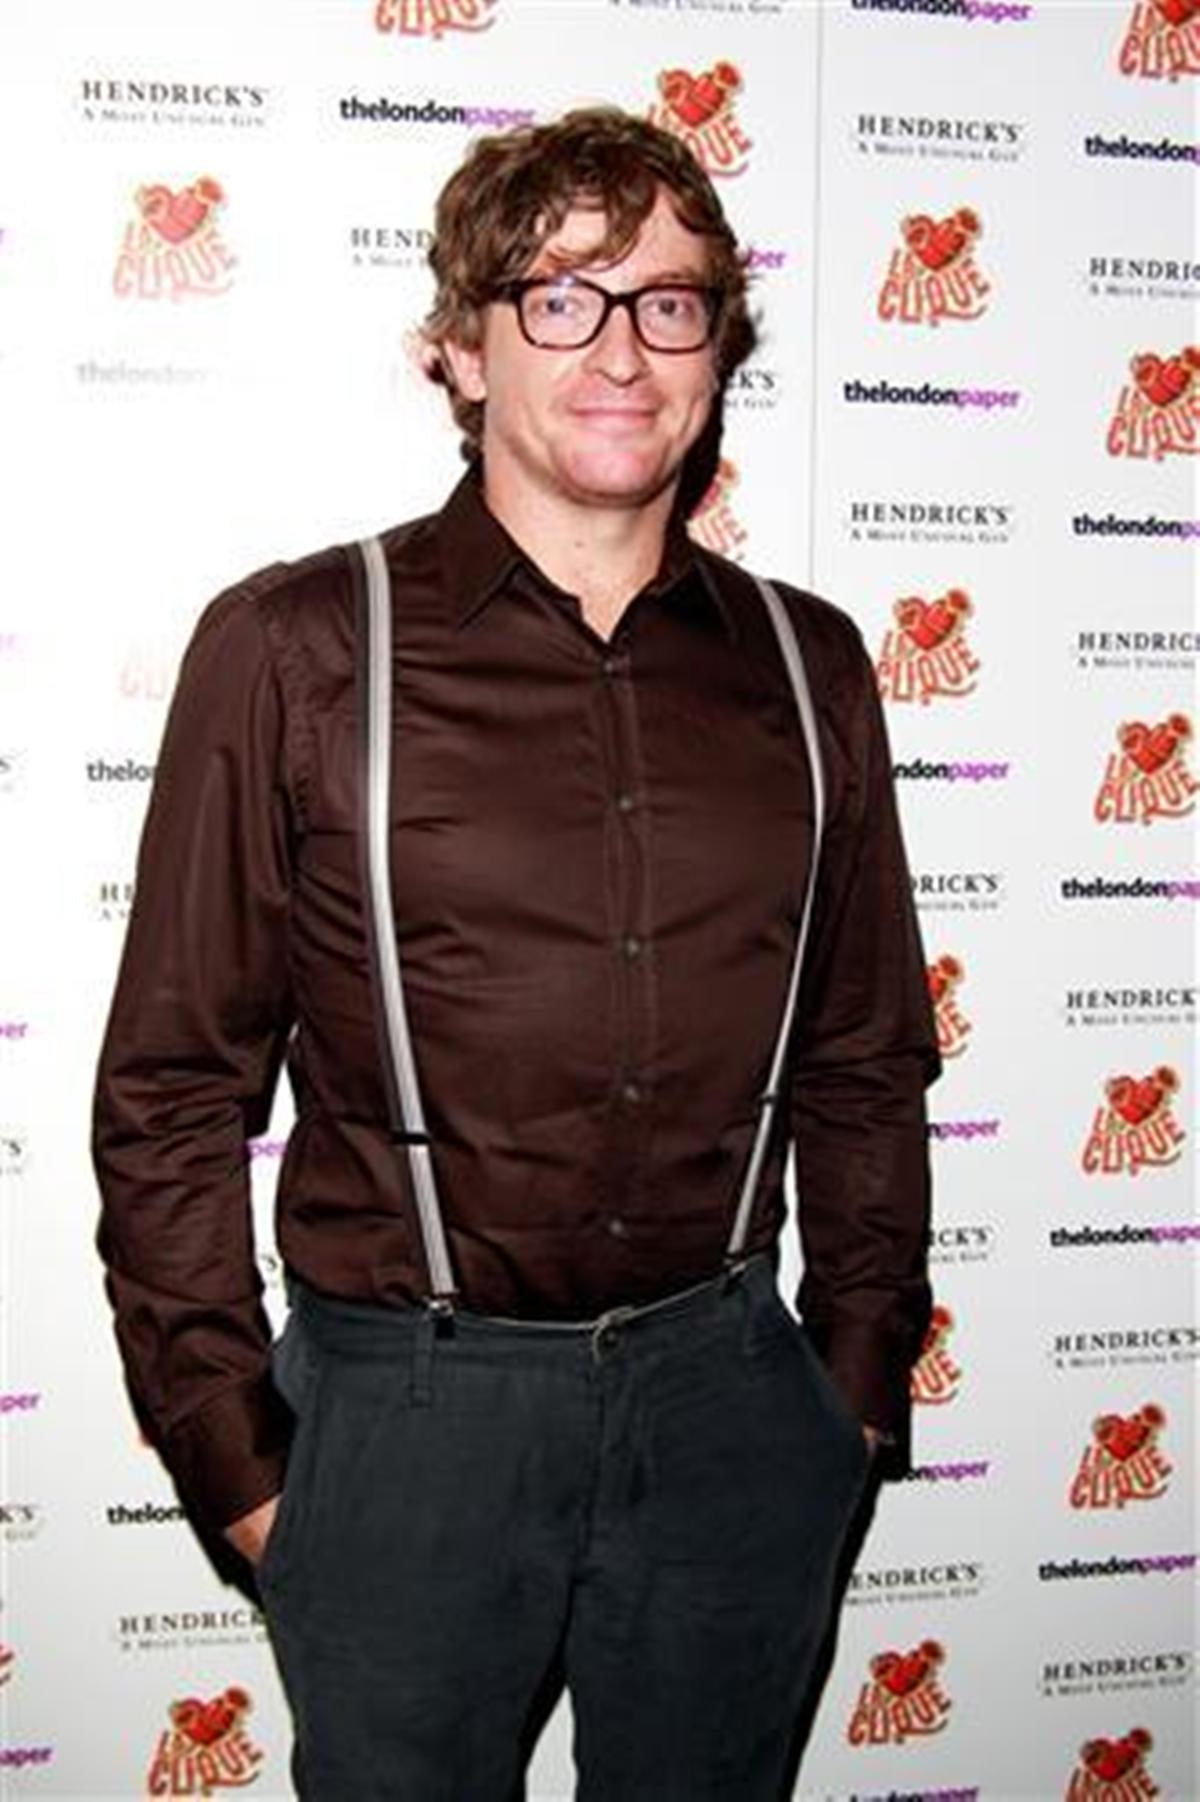 rhys darby tourrhys darby don johnson, rhys darby what we do in the shadows, rhys darby harry potter, rhys darby vampire, rhys darby, rhys darby stand up, rhys darby x files, rhys darby yes man, rhys darby instagram, rhys darby dinosaur, rhys darby robin hood, rhys darby mermaid, rhys darby tour, rhys darby imdb, rhys darby youtube, rhys darby imagine that, rhys darby flight of the conchords, rhys darby modern family, rhys darby twitter, rhys darby short poppies